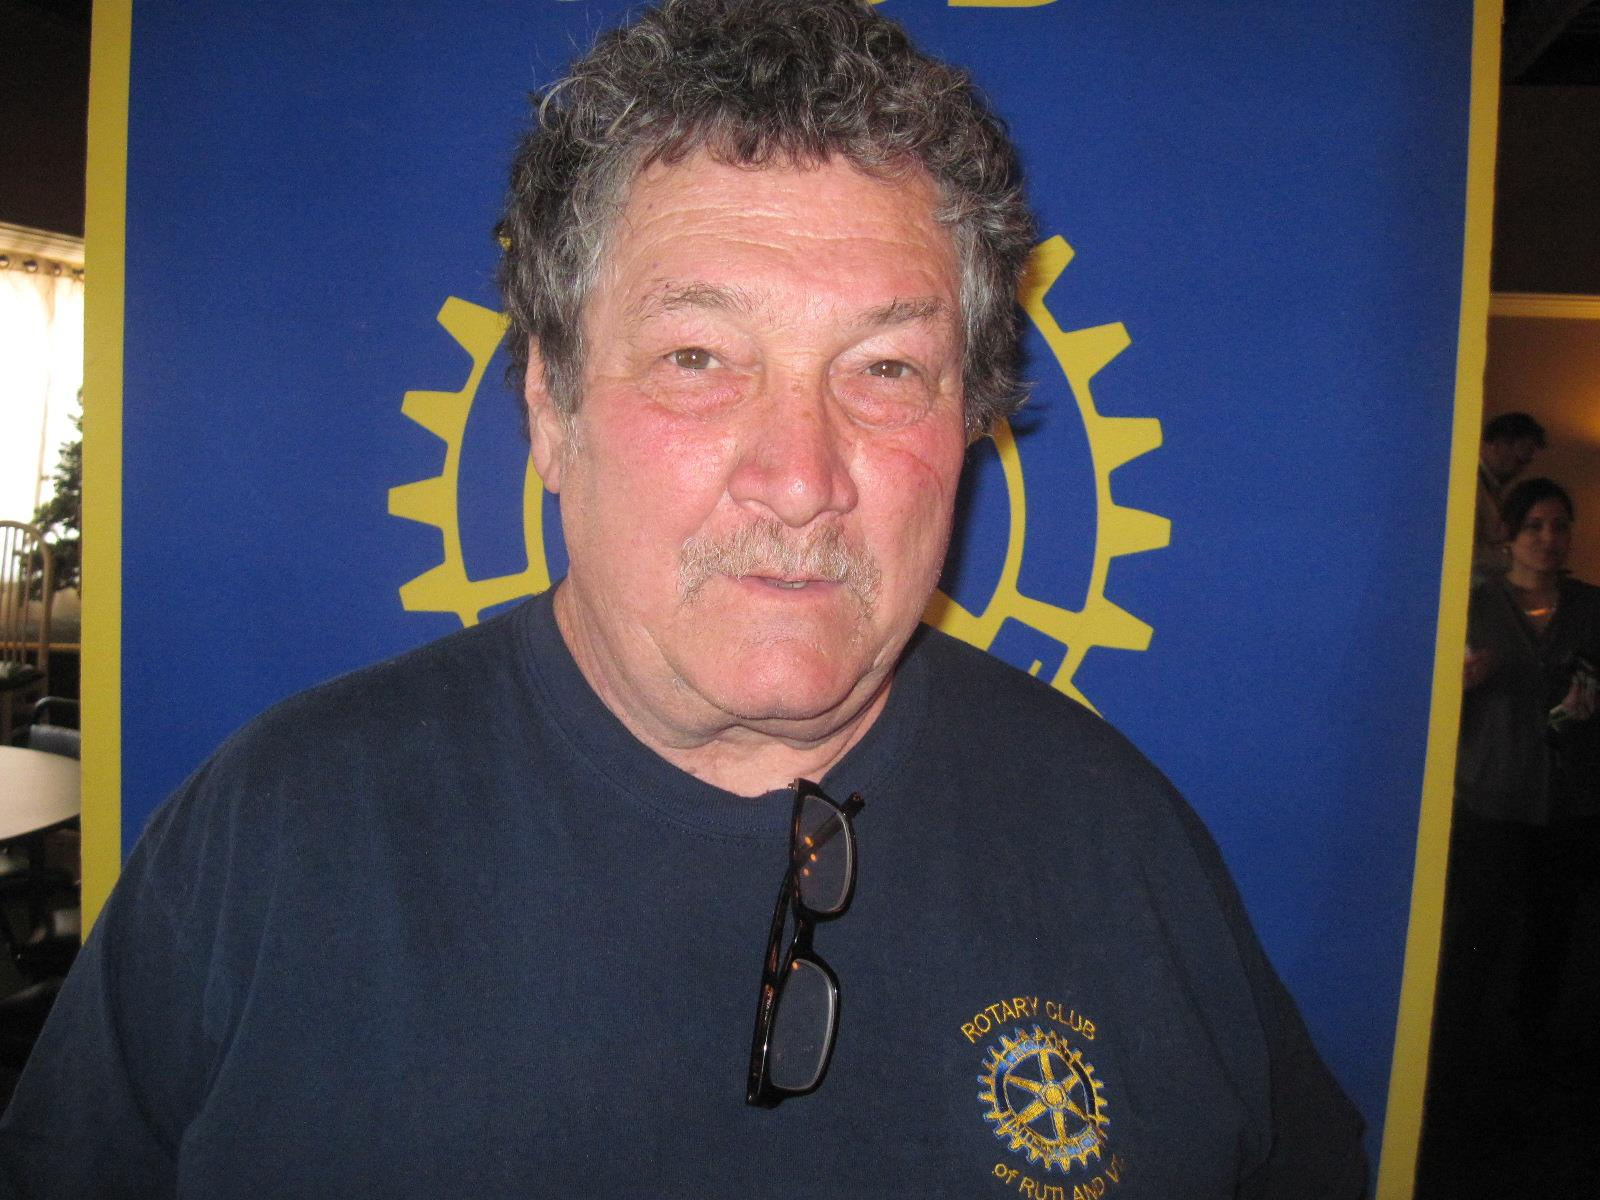 Stories | Rotary Club of Rutland